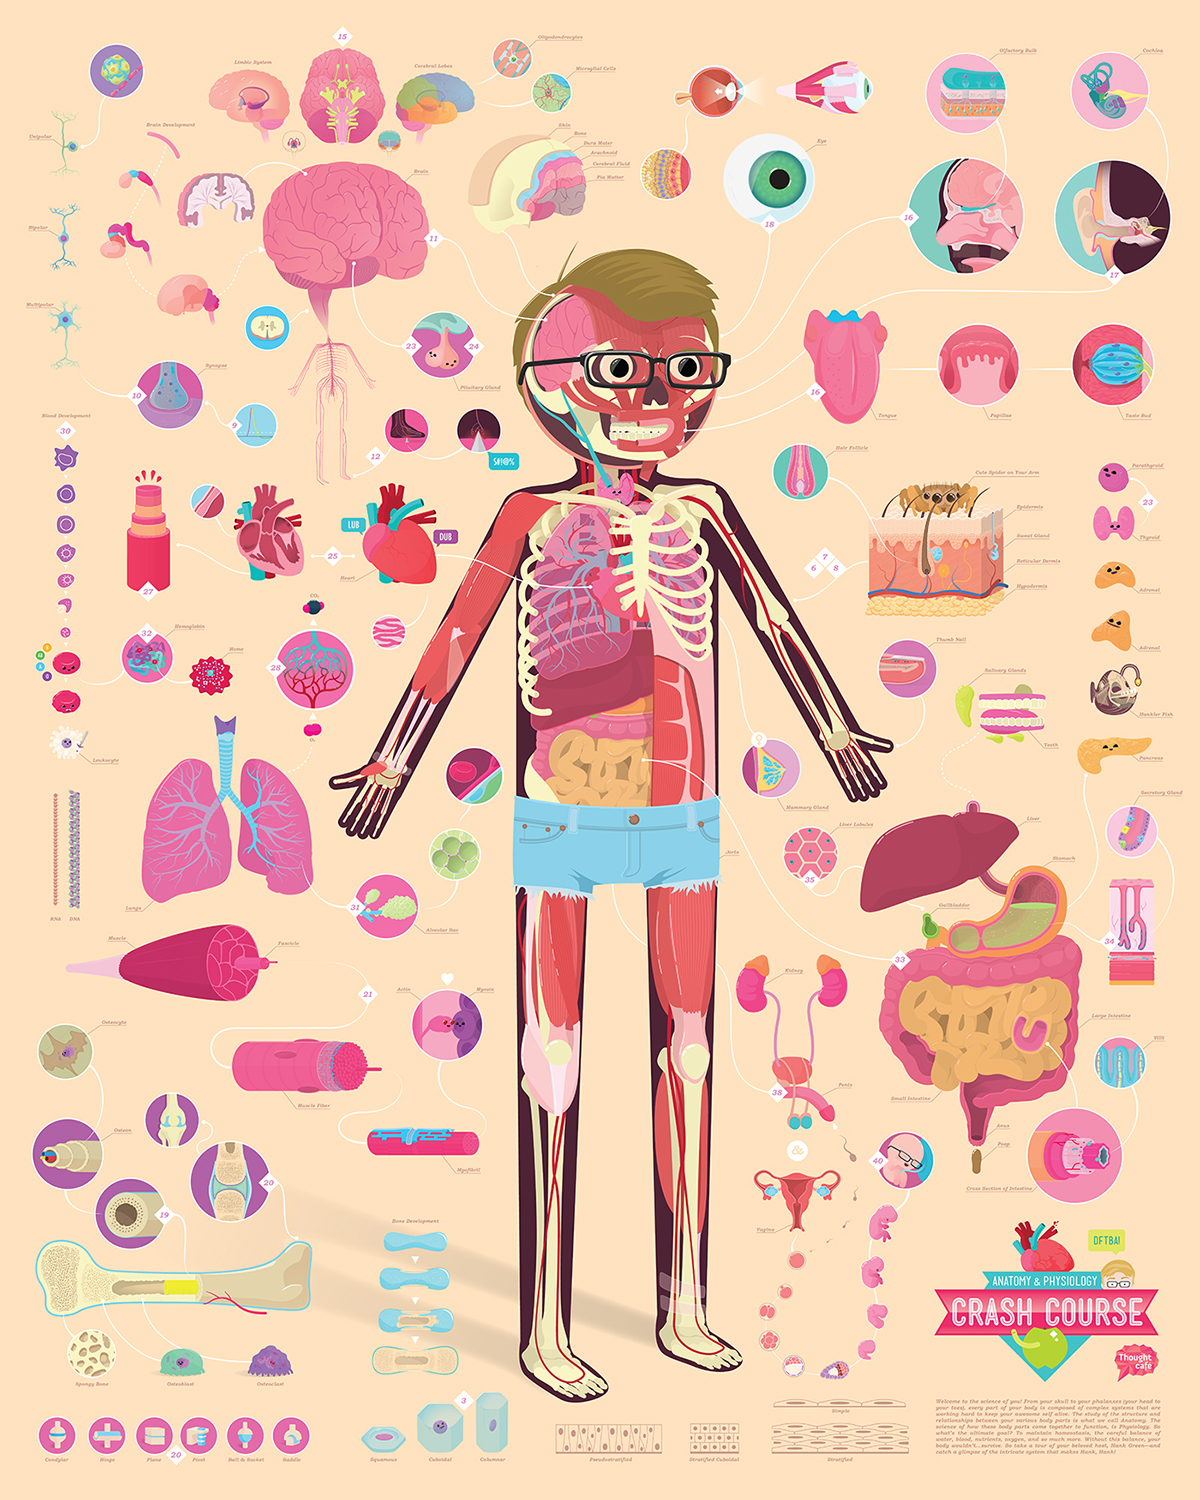 Crash Course Anatomy Poster On Behance